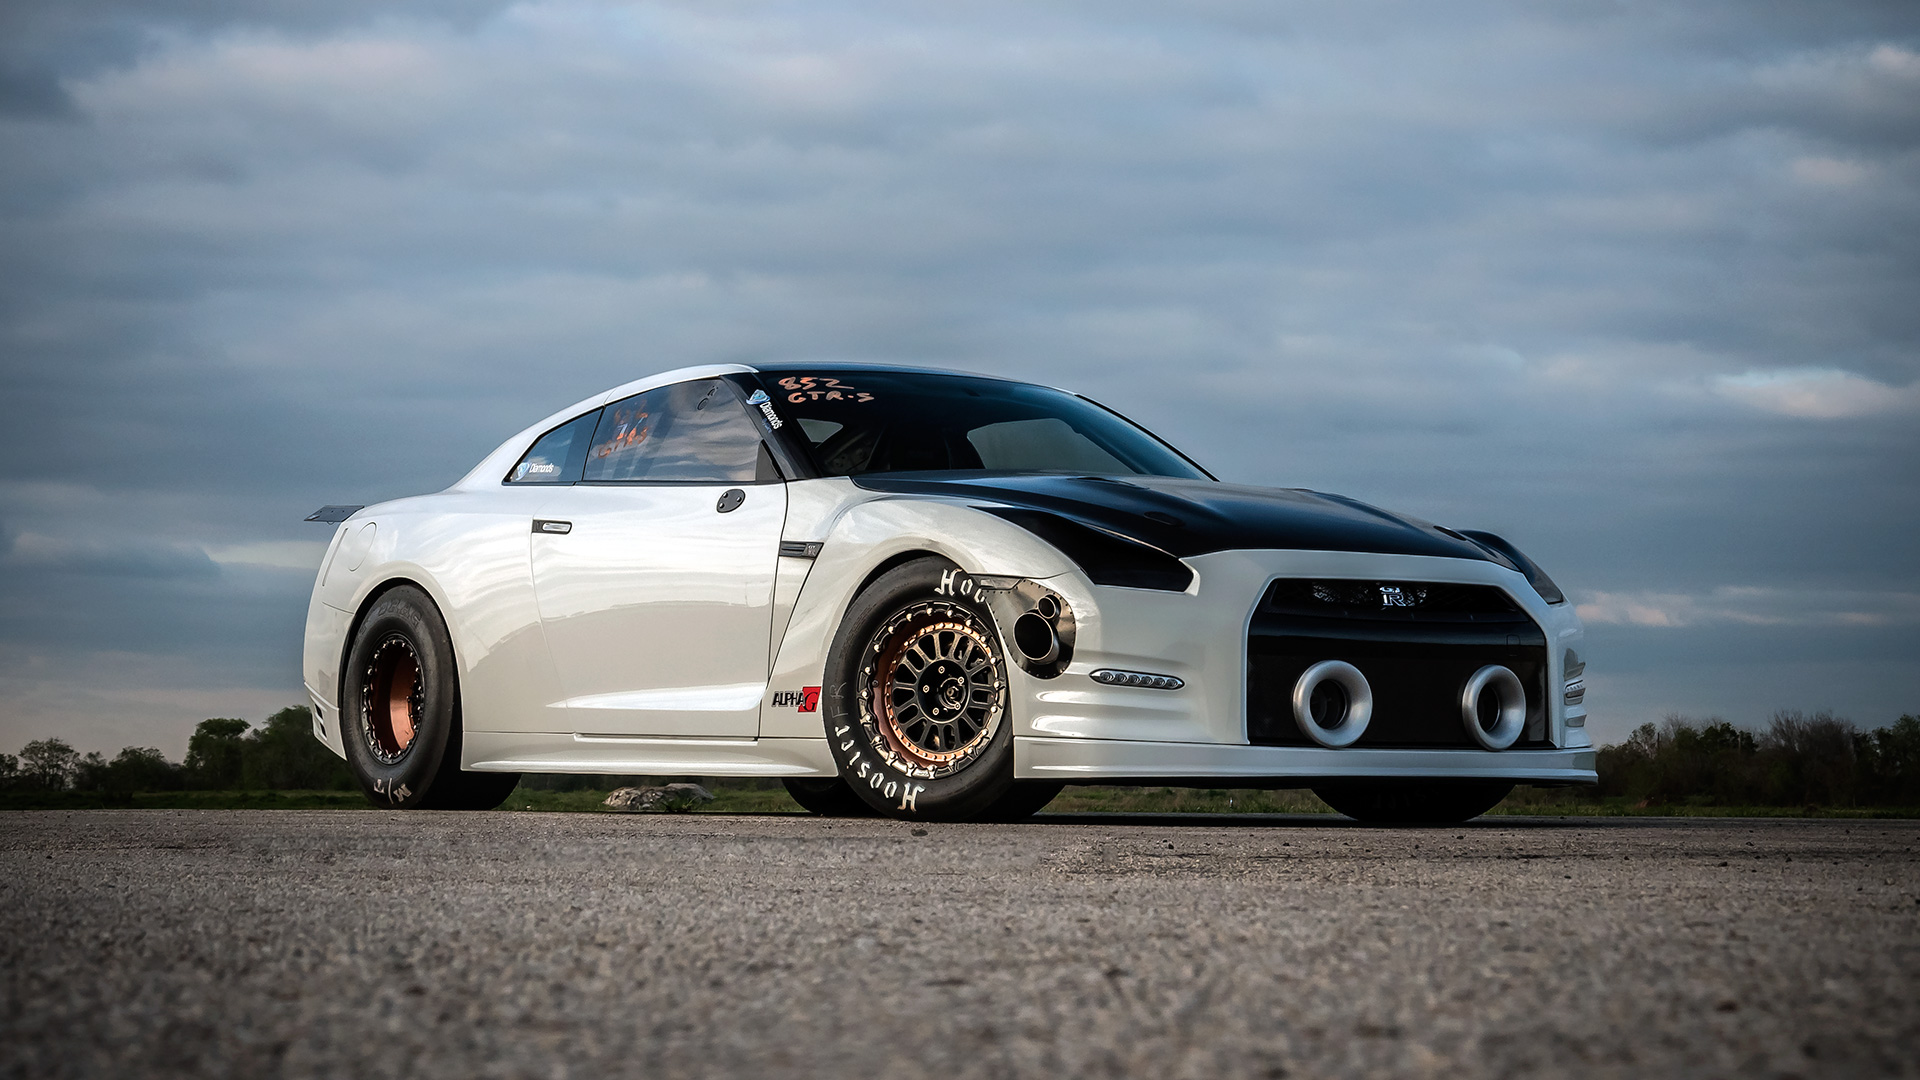 The 2000 Hp Alpha G Gtr Sets A New World Record Moto